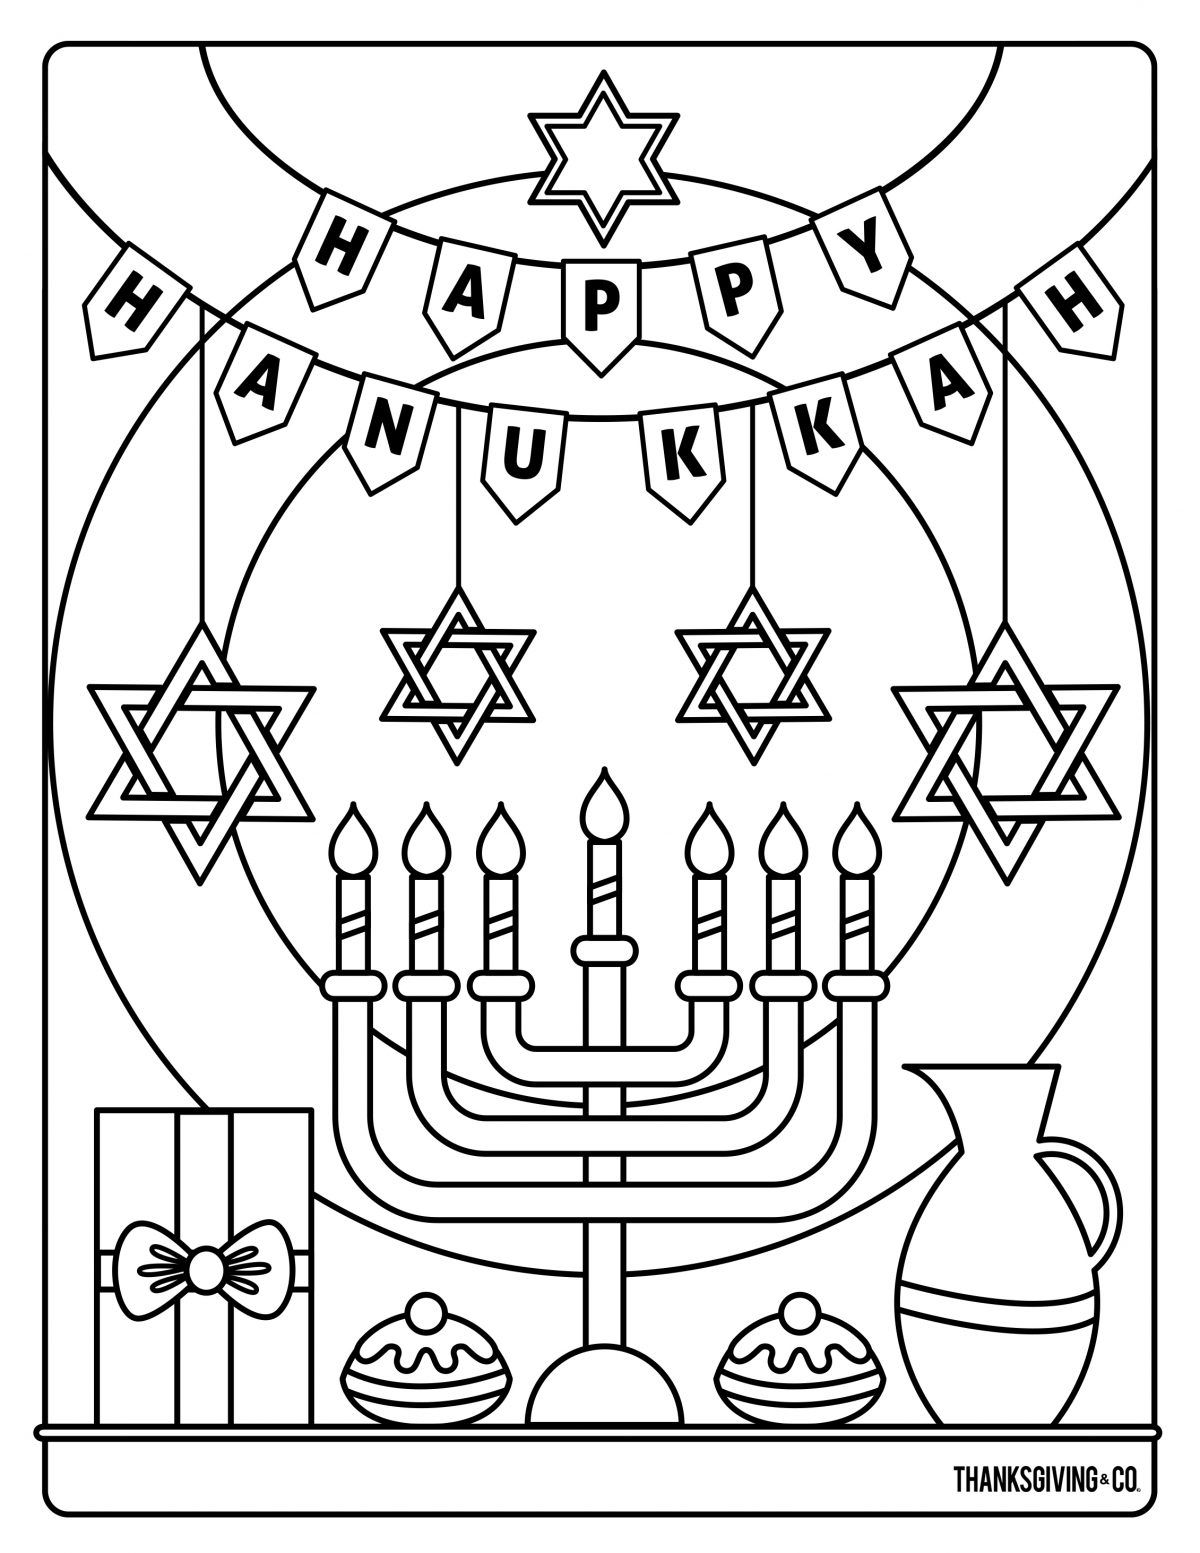 4 Hanukkah coloring pages you can print and share with